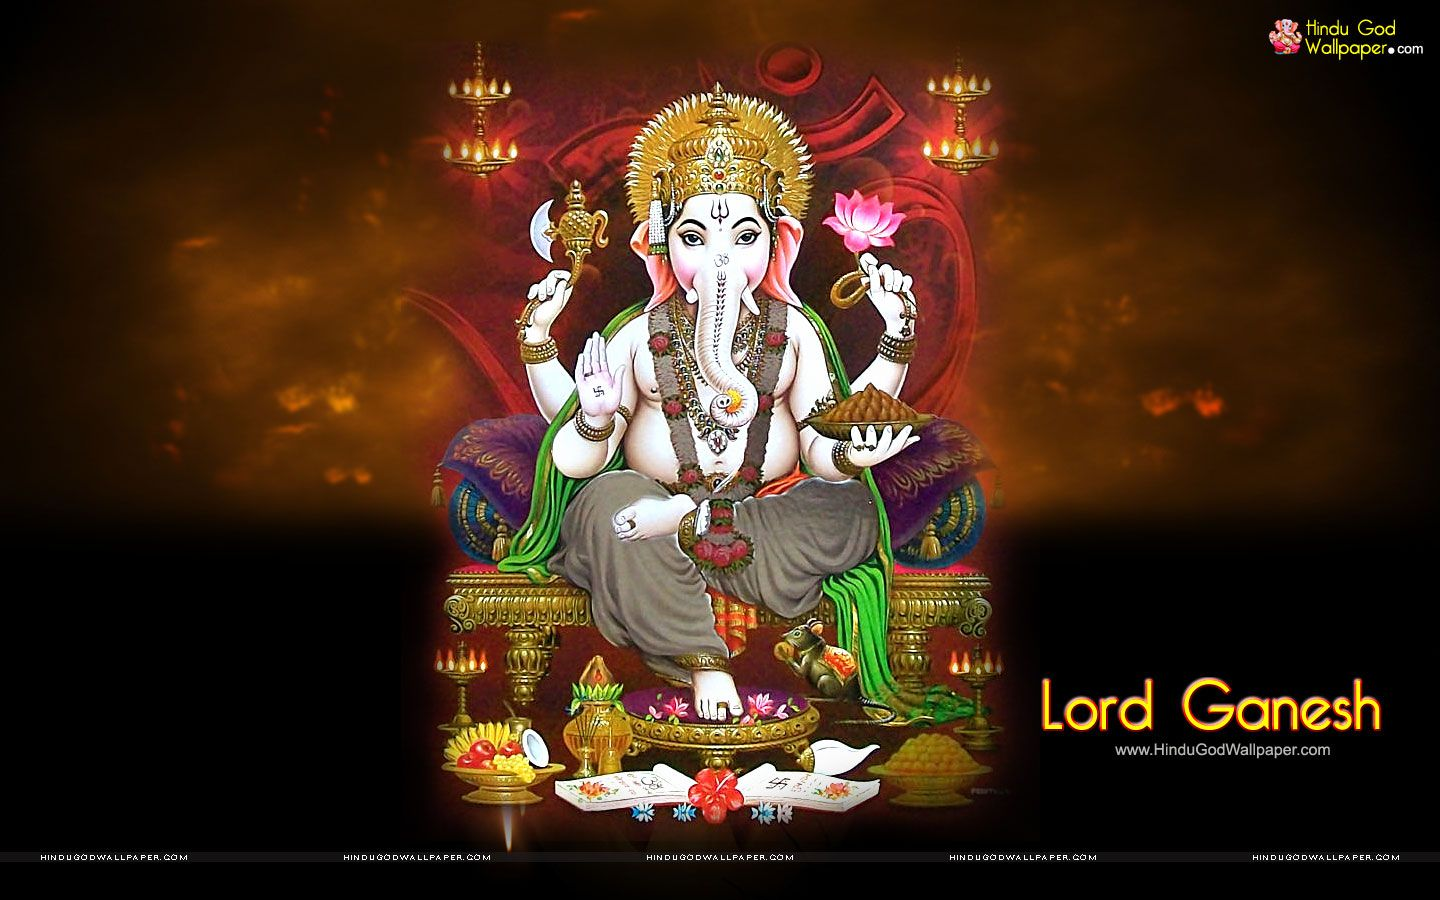 Hd wallpaper ganesh - Lord Ganesh Wallpapers Hd High Resolution Download Lord Ganesha Wallpapers Pinterest Ganesh Wallpaper Ganesh And Ganesha